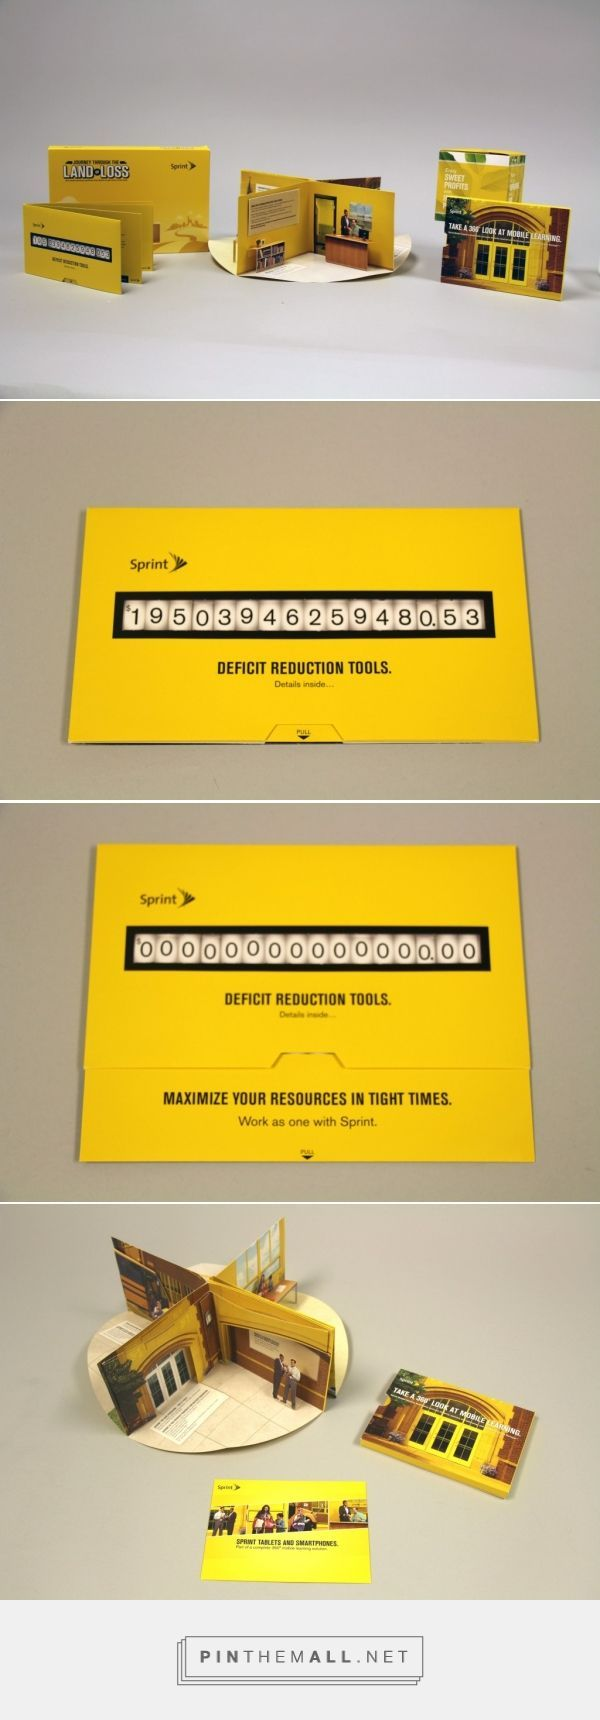 Sprint multiwave direct mail campaign | Structural Graphics Blog - created via http://pinthemall.net